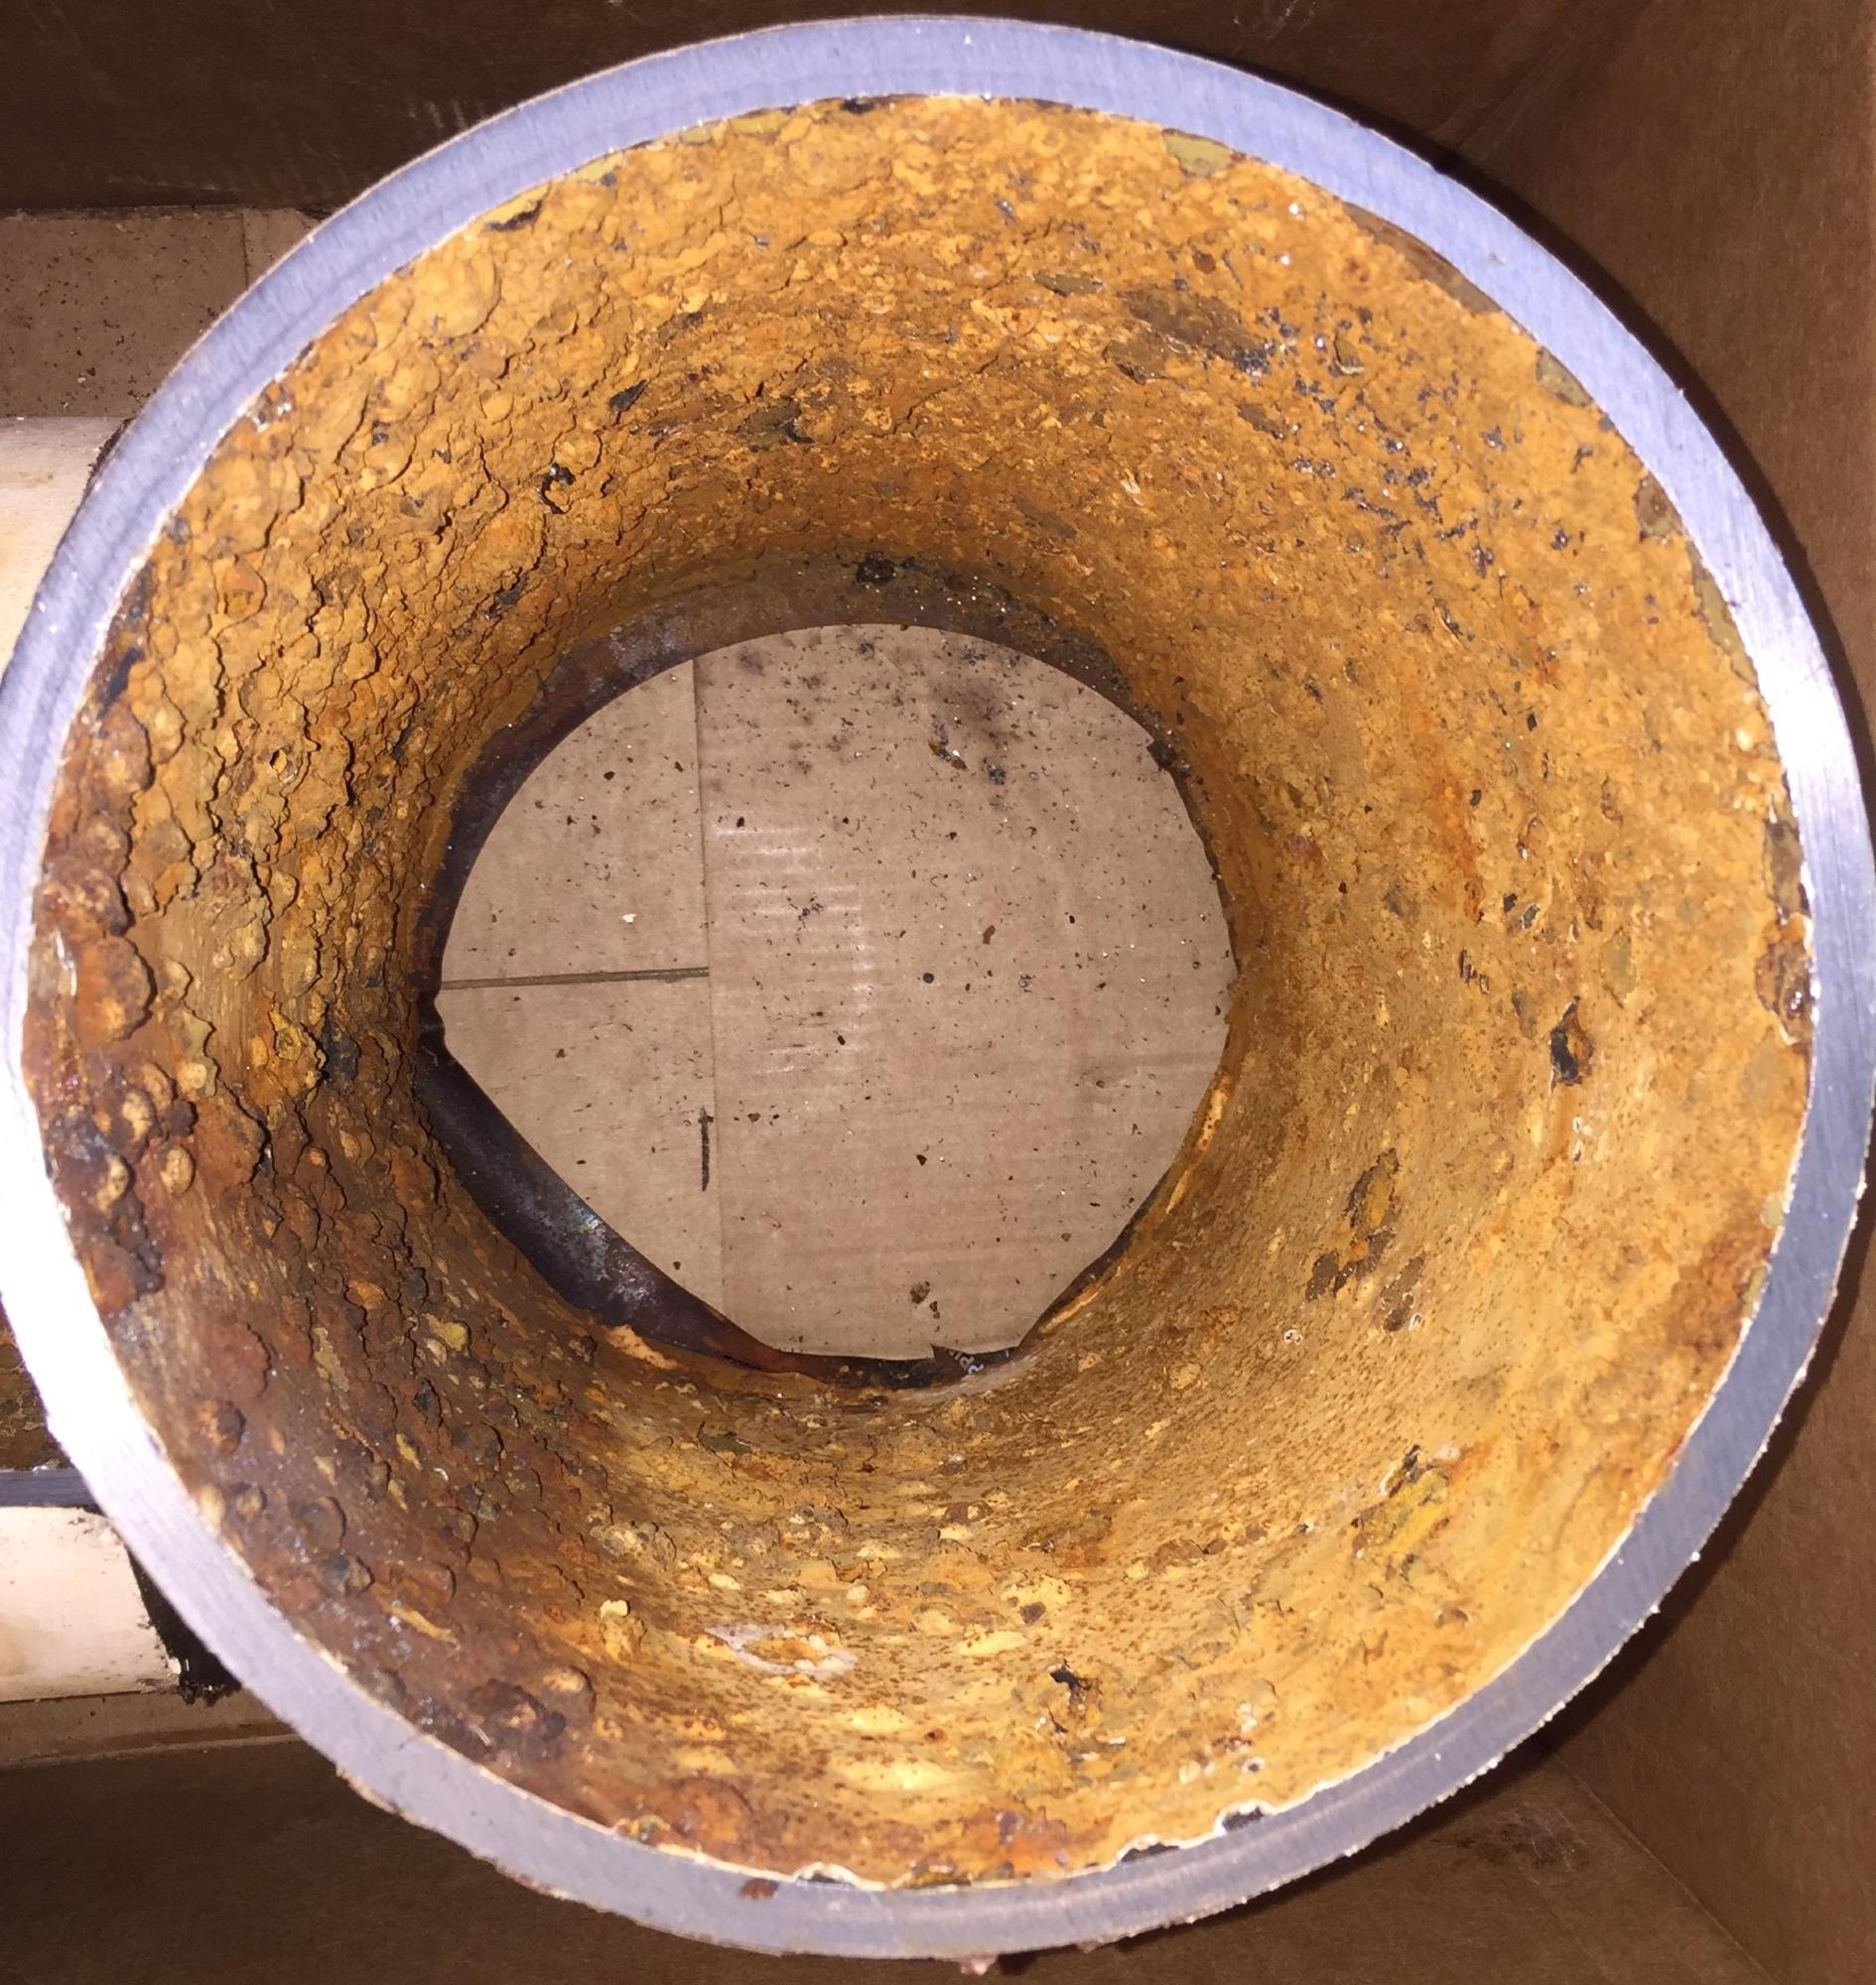 The rusted interior of this water pipe contains chromium that reacts with residual water disinfectants to form carcinogenic hexavalent chromium. Image Credit: Water Chemistry and Technology Lab/UCR.